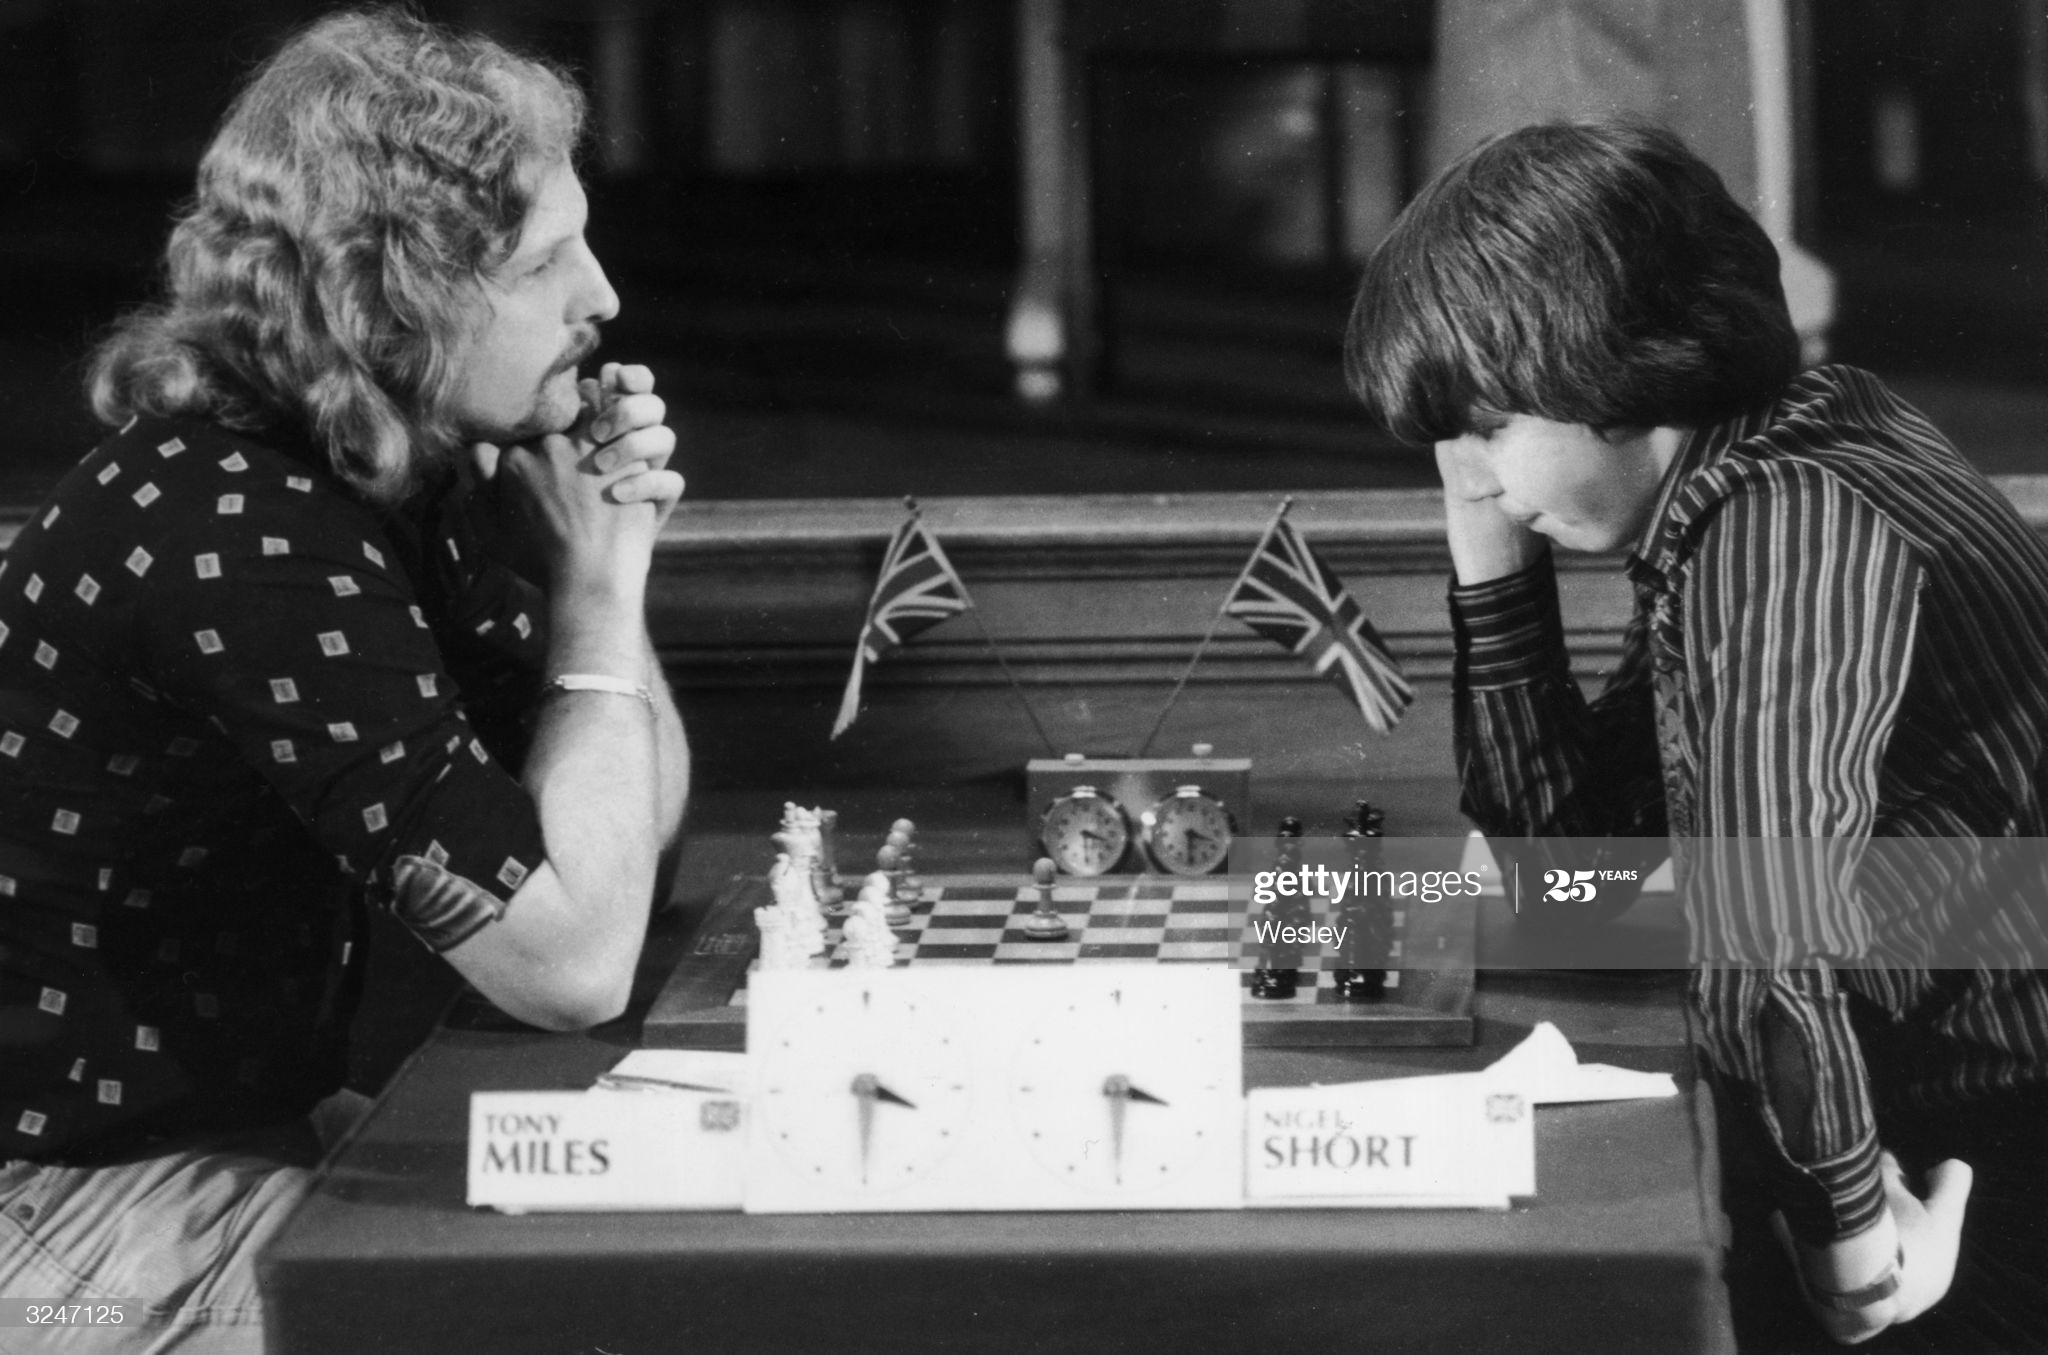 10th April 1980: Tony Miles (left) plays 14-year-old Nigel Short in the opening match of the Phillips and Drew Chess Tournament at County Hall, London. (Photo by Wesley/Keystone/Getty Images)